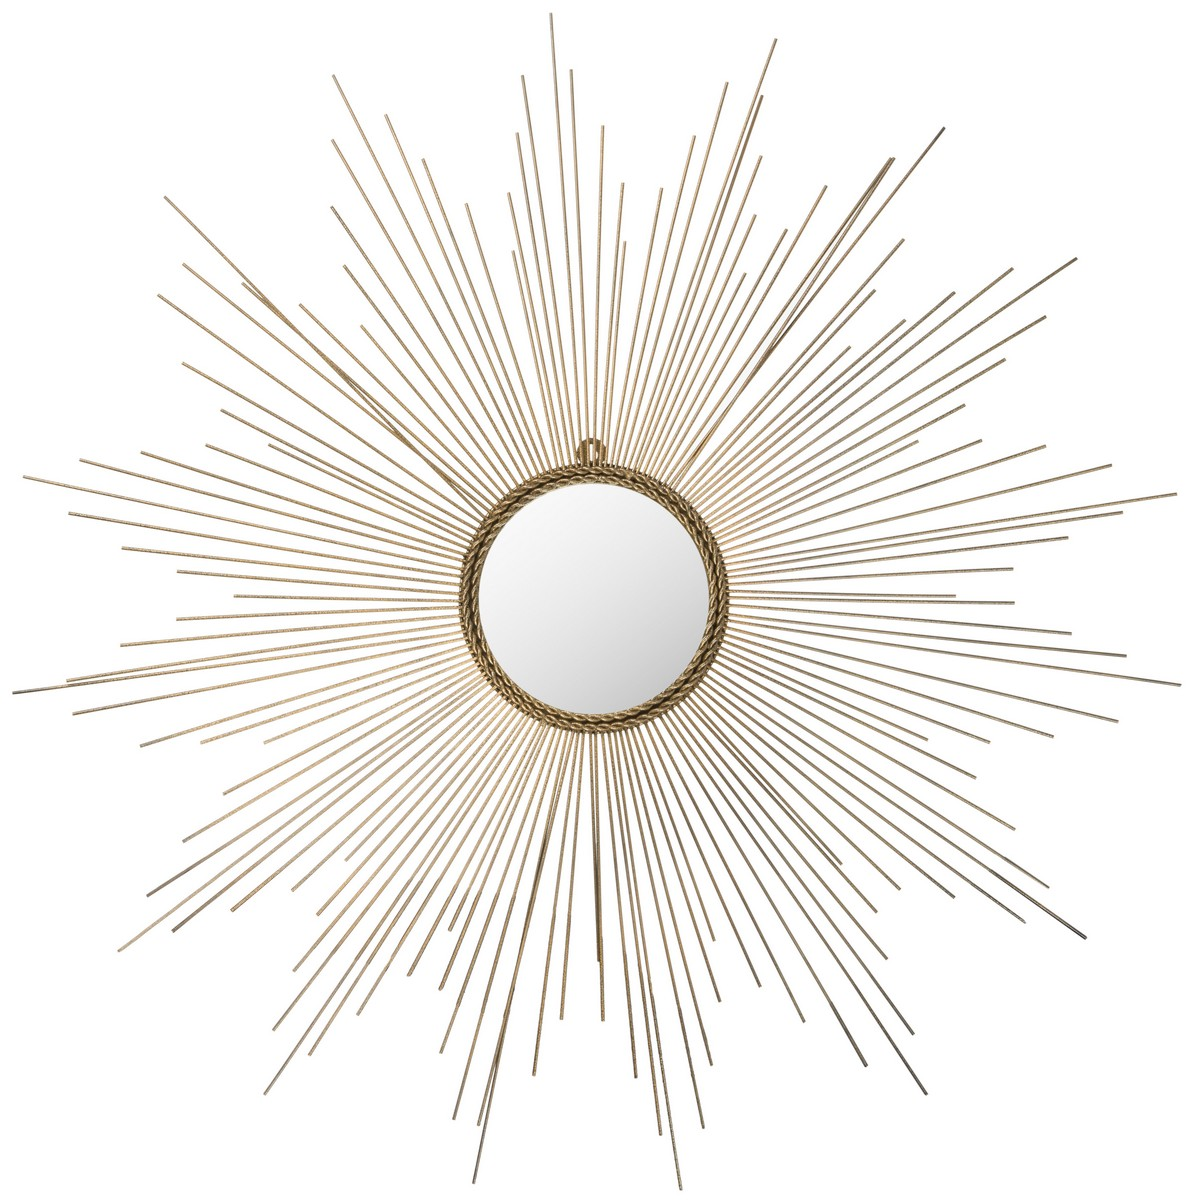 Silver Sunburst Mirror Wall Decor | Martha Stewart Sunburst Mirror | Gold Sun Mirror